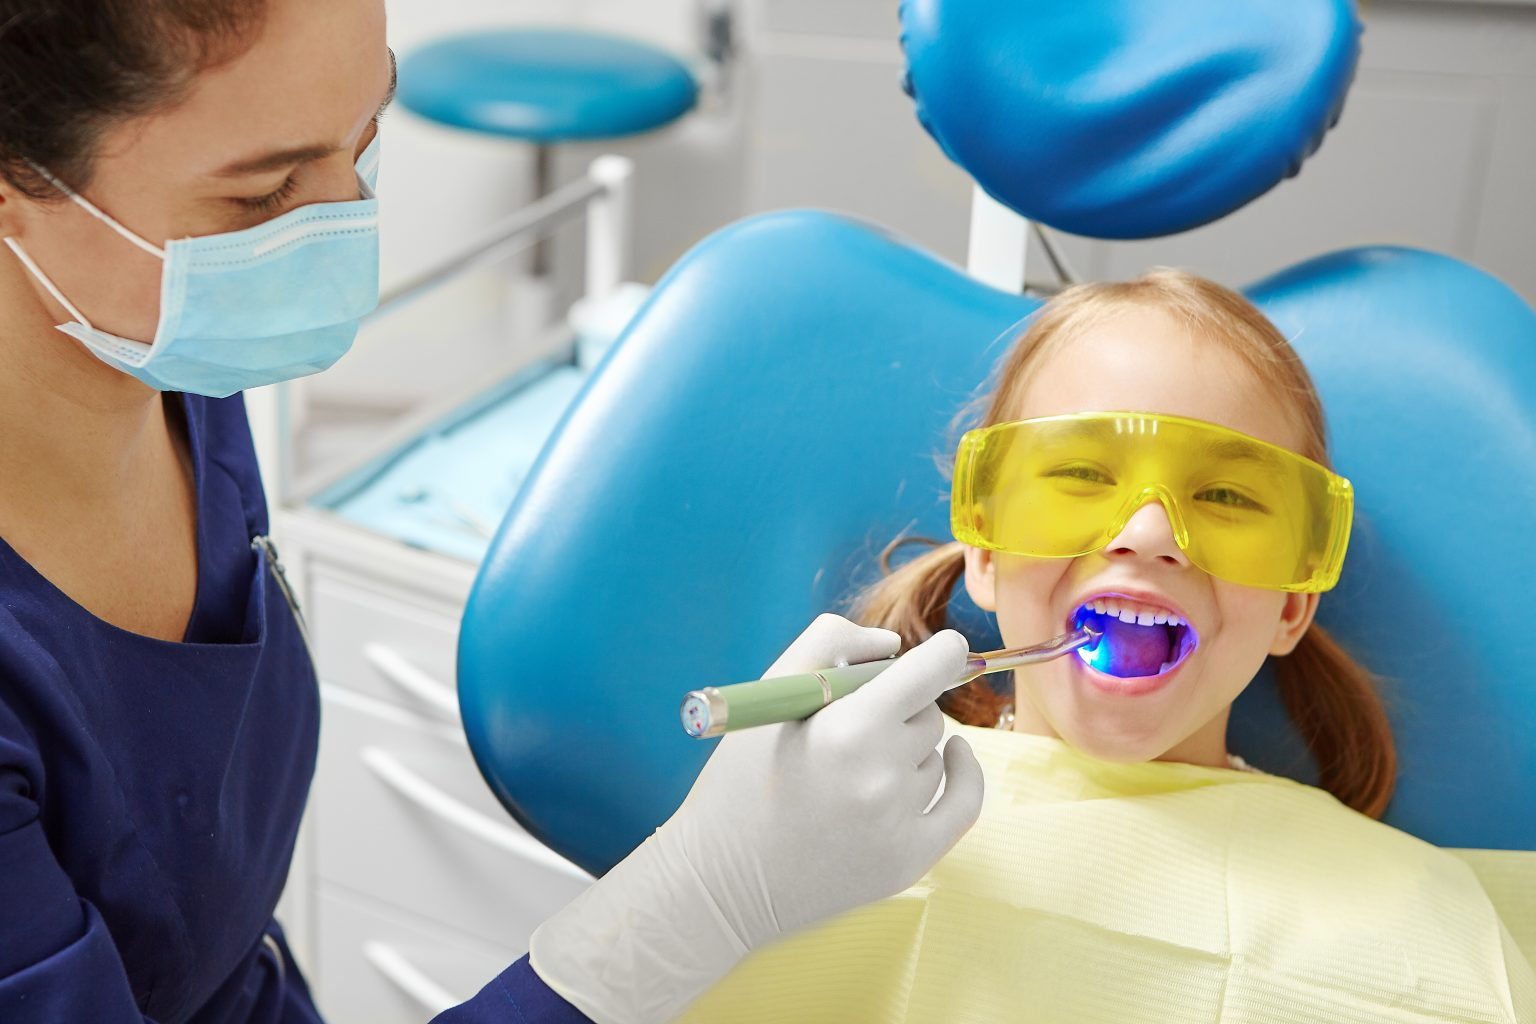 Process Of Drying The Dental Seal After Treatment Of The Patient's Tooth In Pediatric Dentistry. Little Girl In Dentist Office.